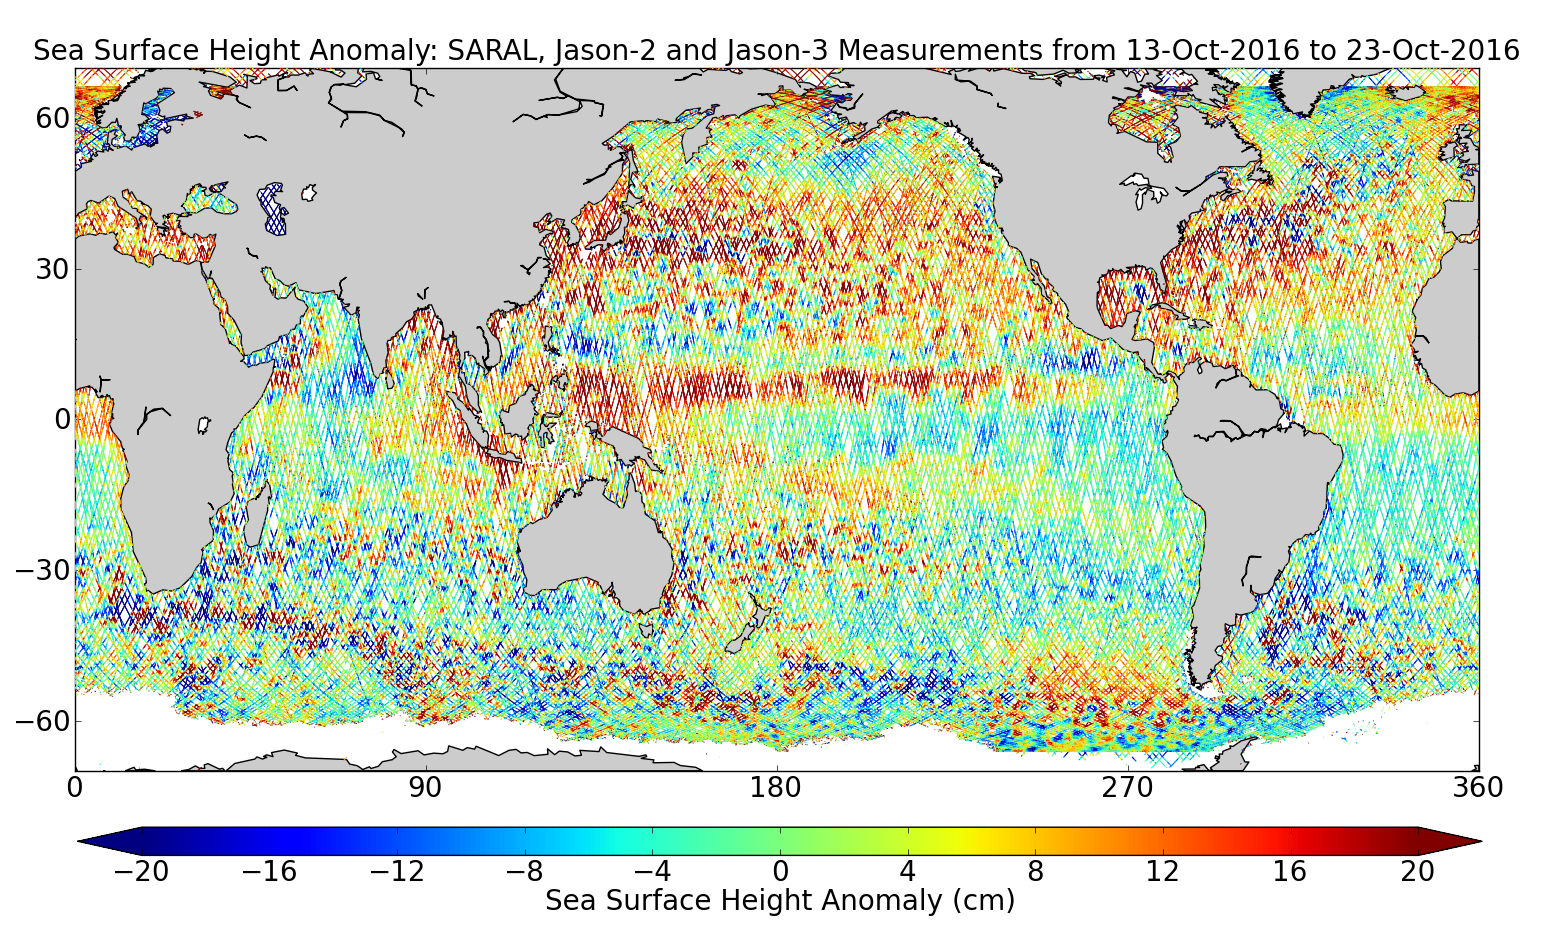 Sea Surface Height Anomaly: SARAL, Jason-2 and Jason-3 Measurements from 13-Oct-2016 to 23-Oct-2016